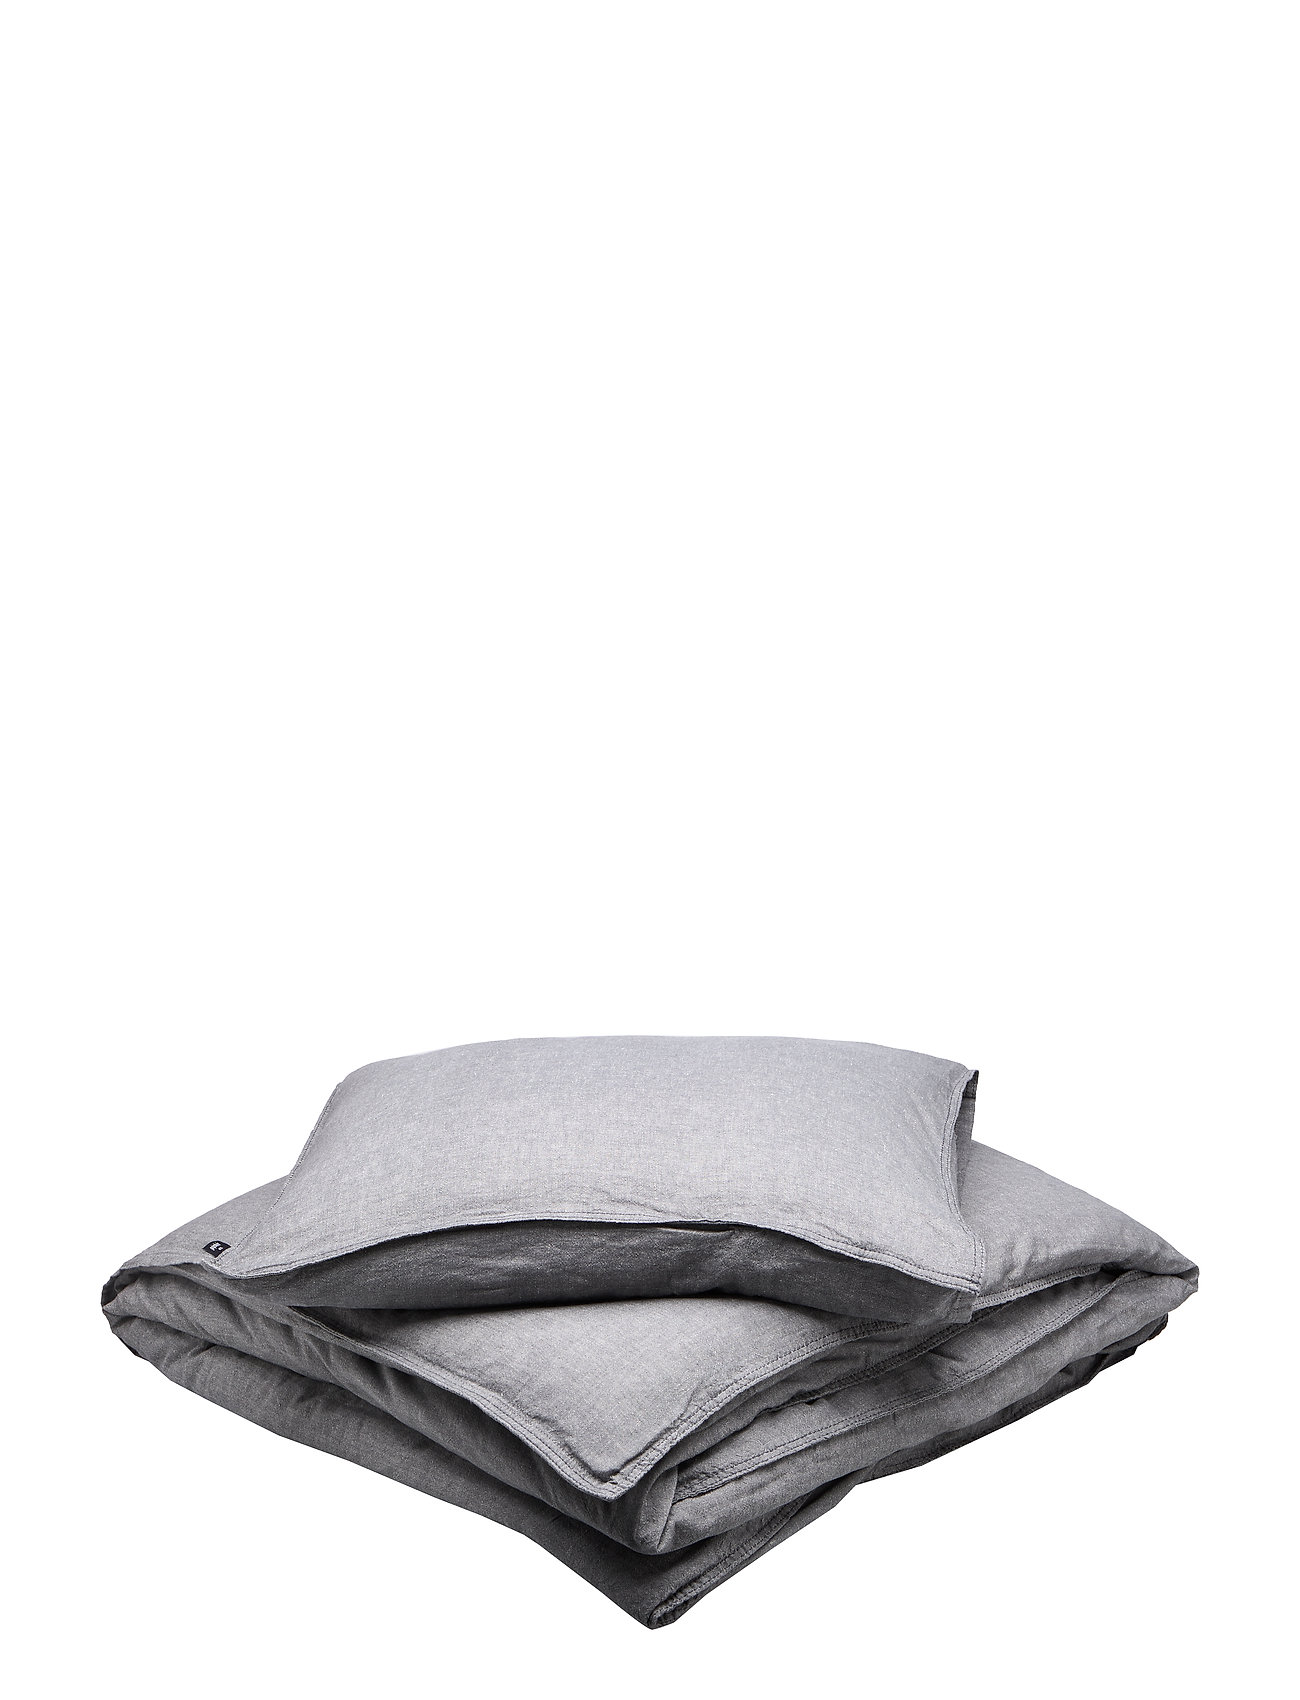 Gripsholm BED SET CHAMBREY EDGAR - DARK GREY